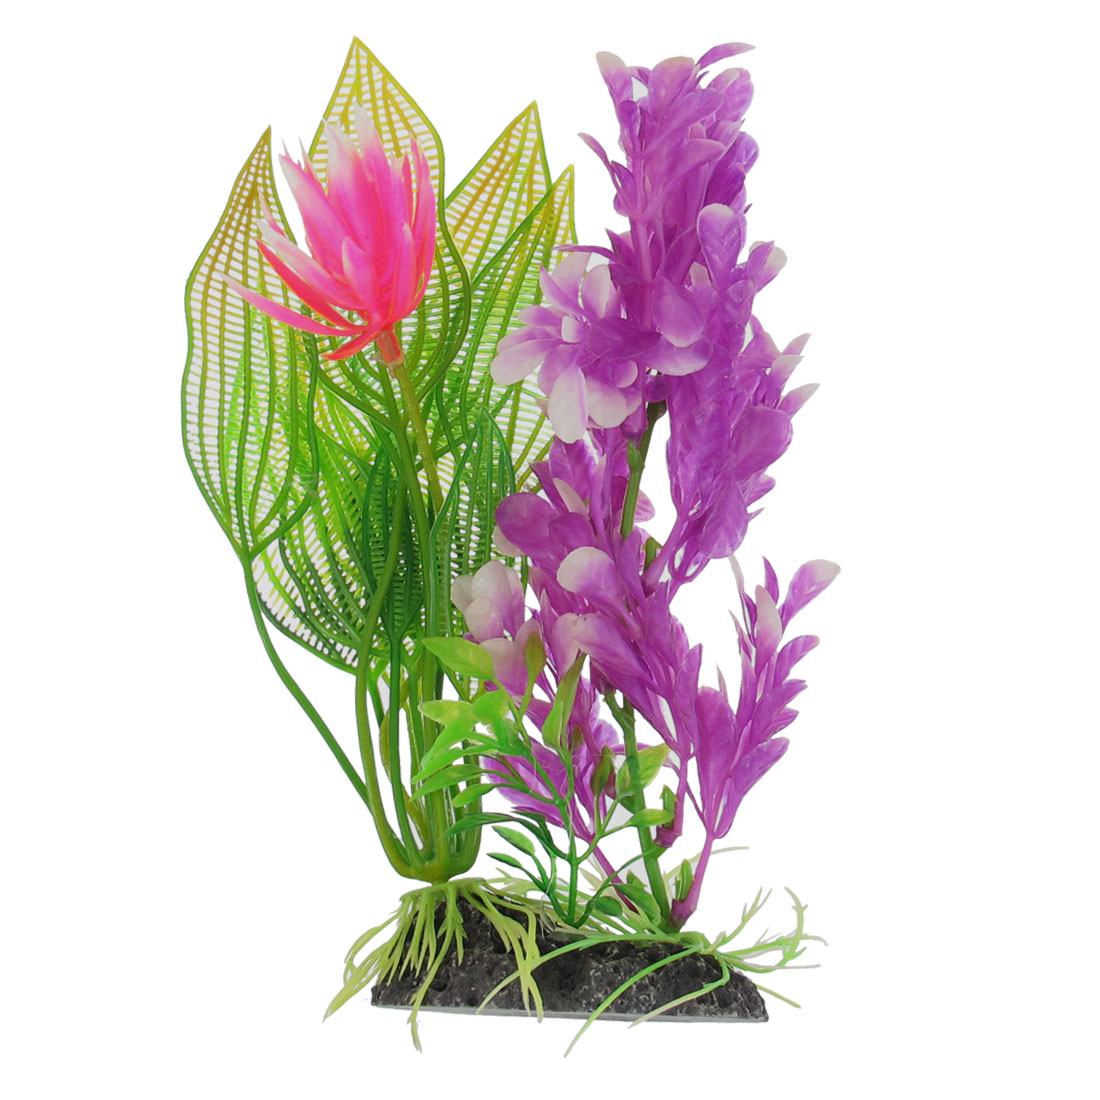 19cm Height Manmade Plastic Flowering Colorful Plant for Aquarium Fish Tank